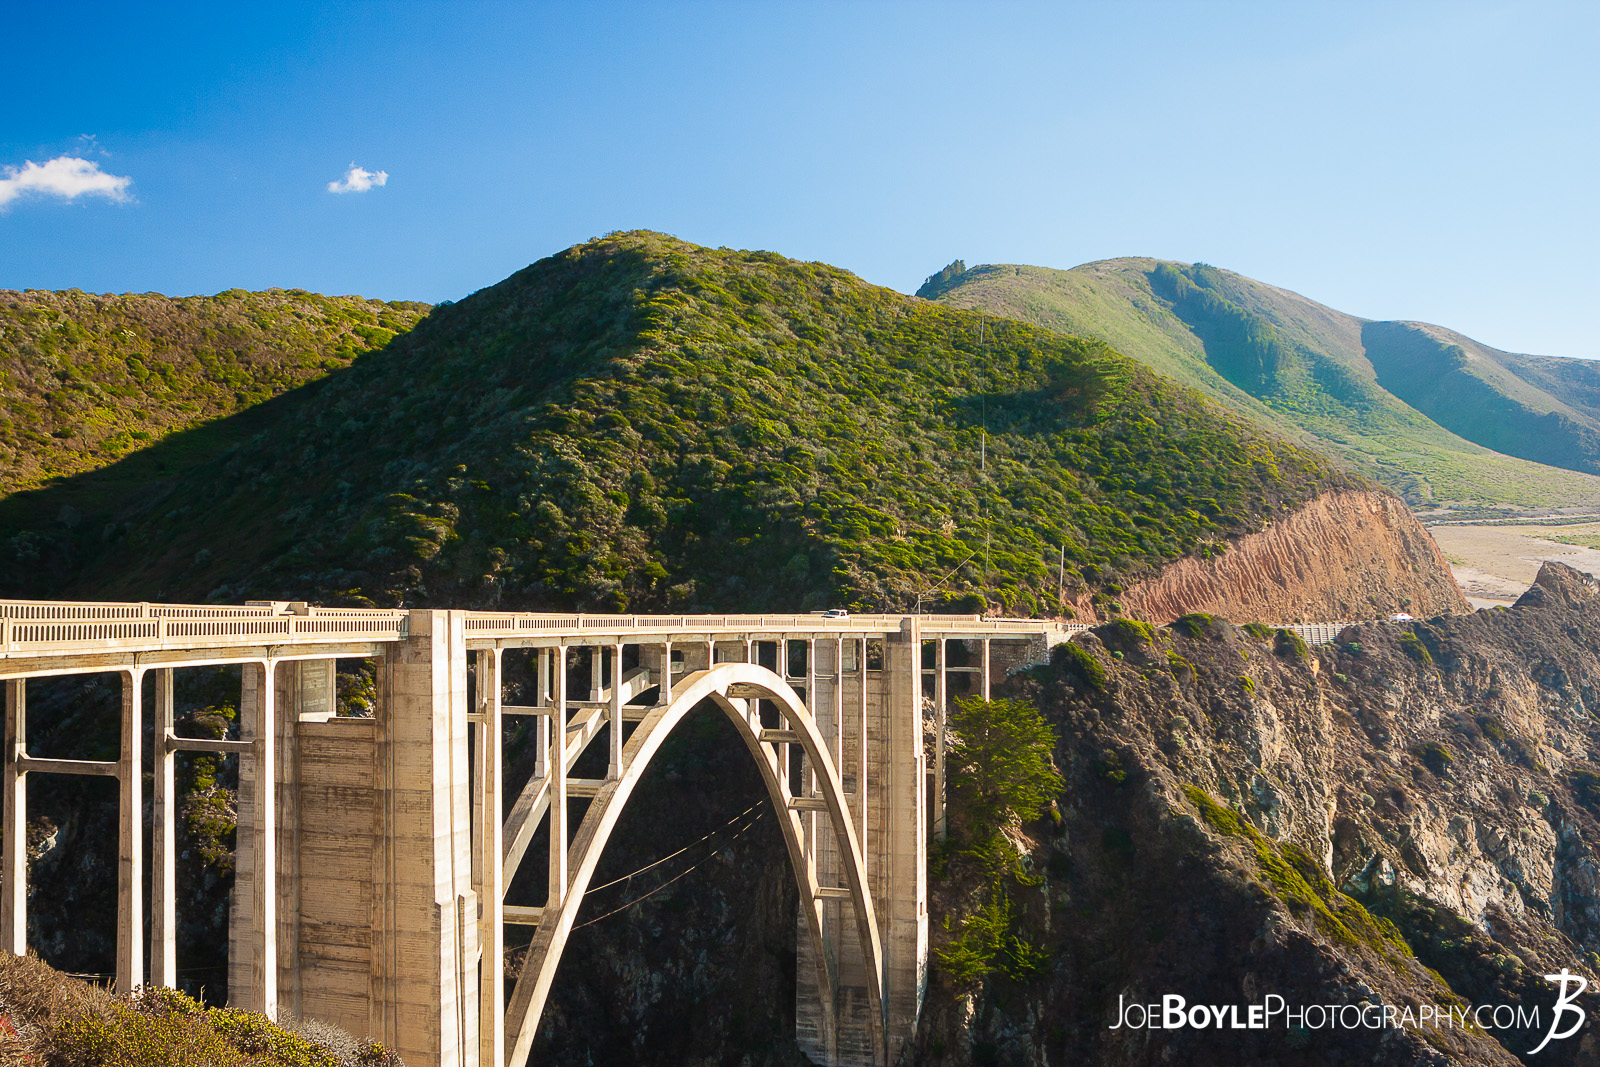 When I was traveling in California, visiting a few friends, we made sure that went down to see Big Sur. On the way we crossed the infamous and iconic Bixby Creek Bridge!